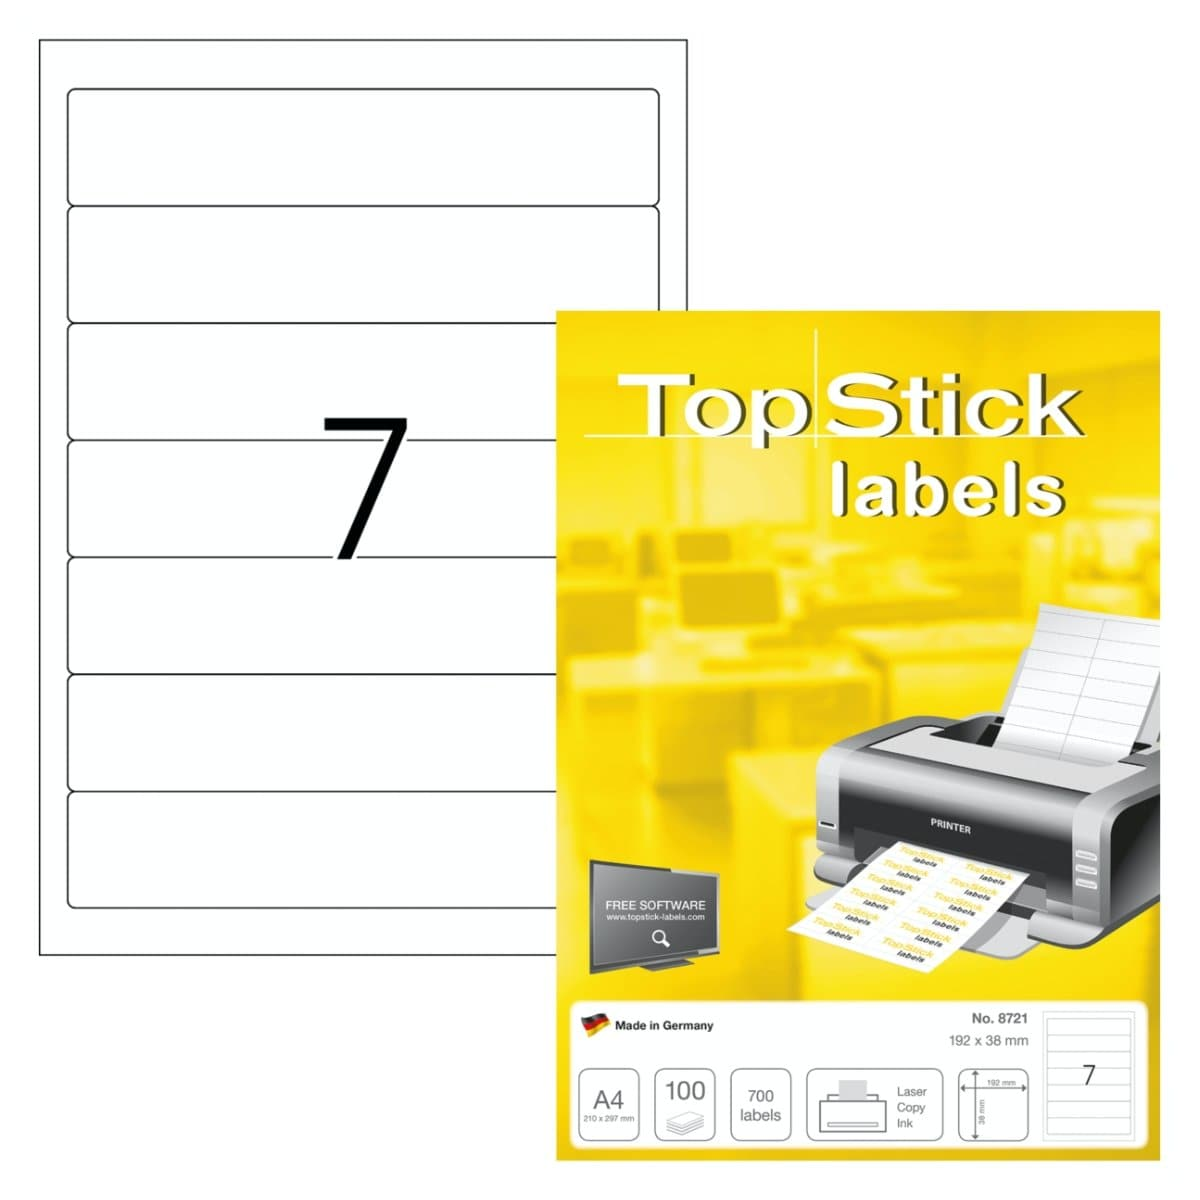 TopStick labels Box File Narrow 7 labels/sheet, round corners, 192 x 38 mm, 100sheets/pack, White